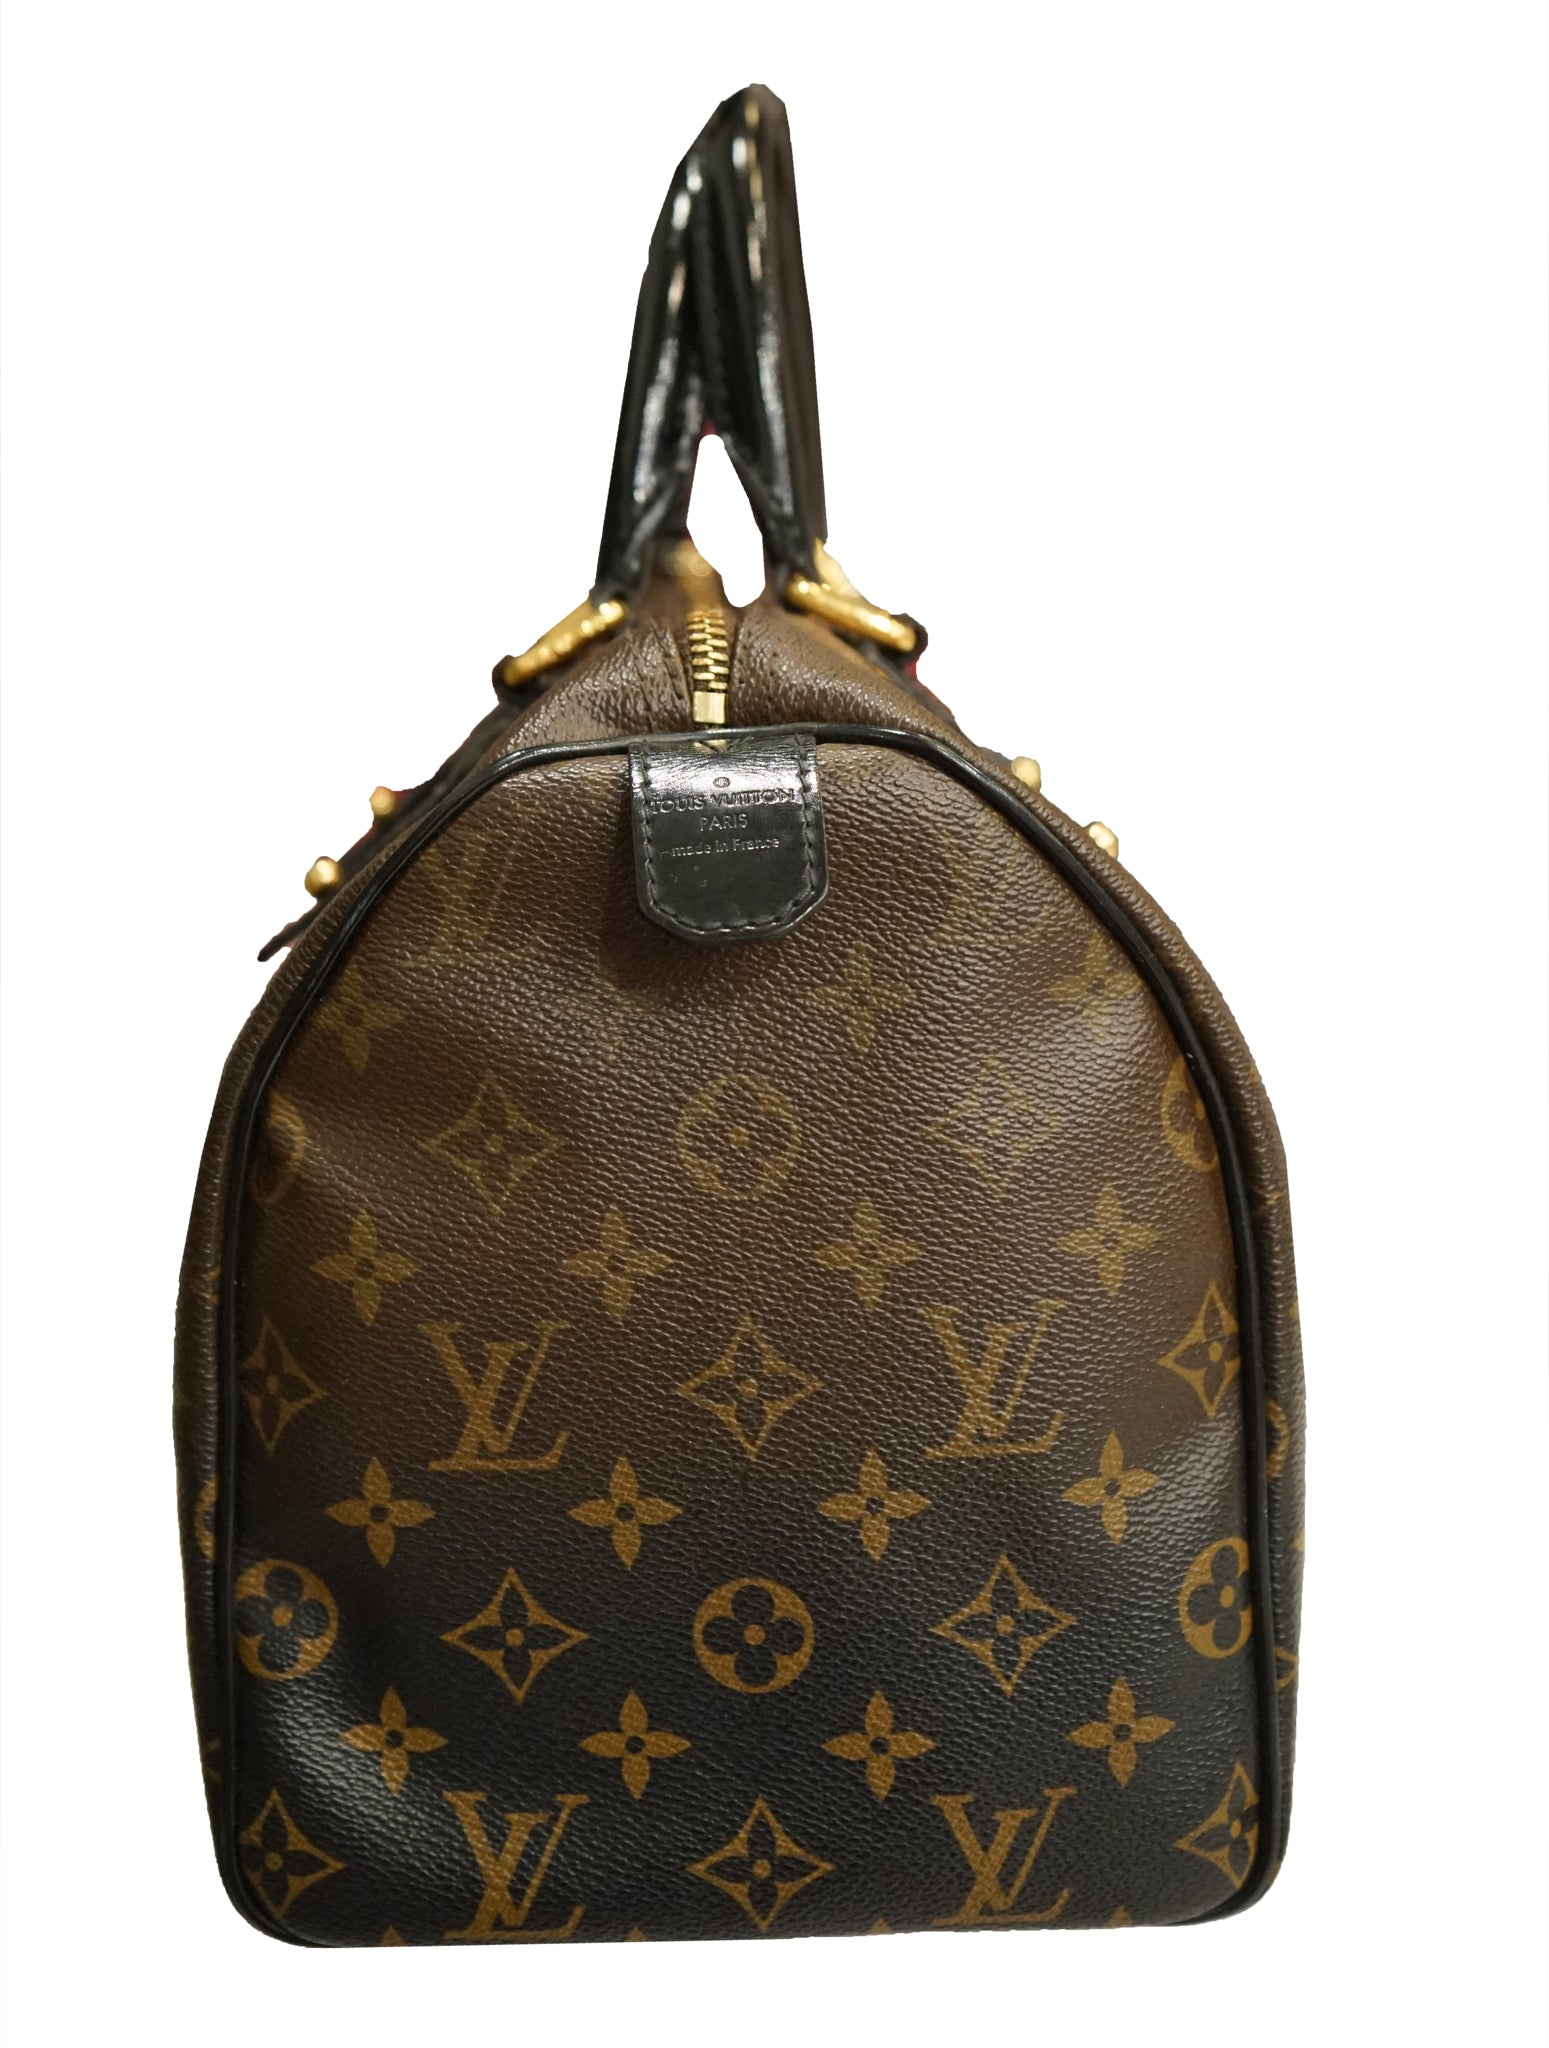 MONOGRAM LEATHER SPEEDY BAG